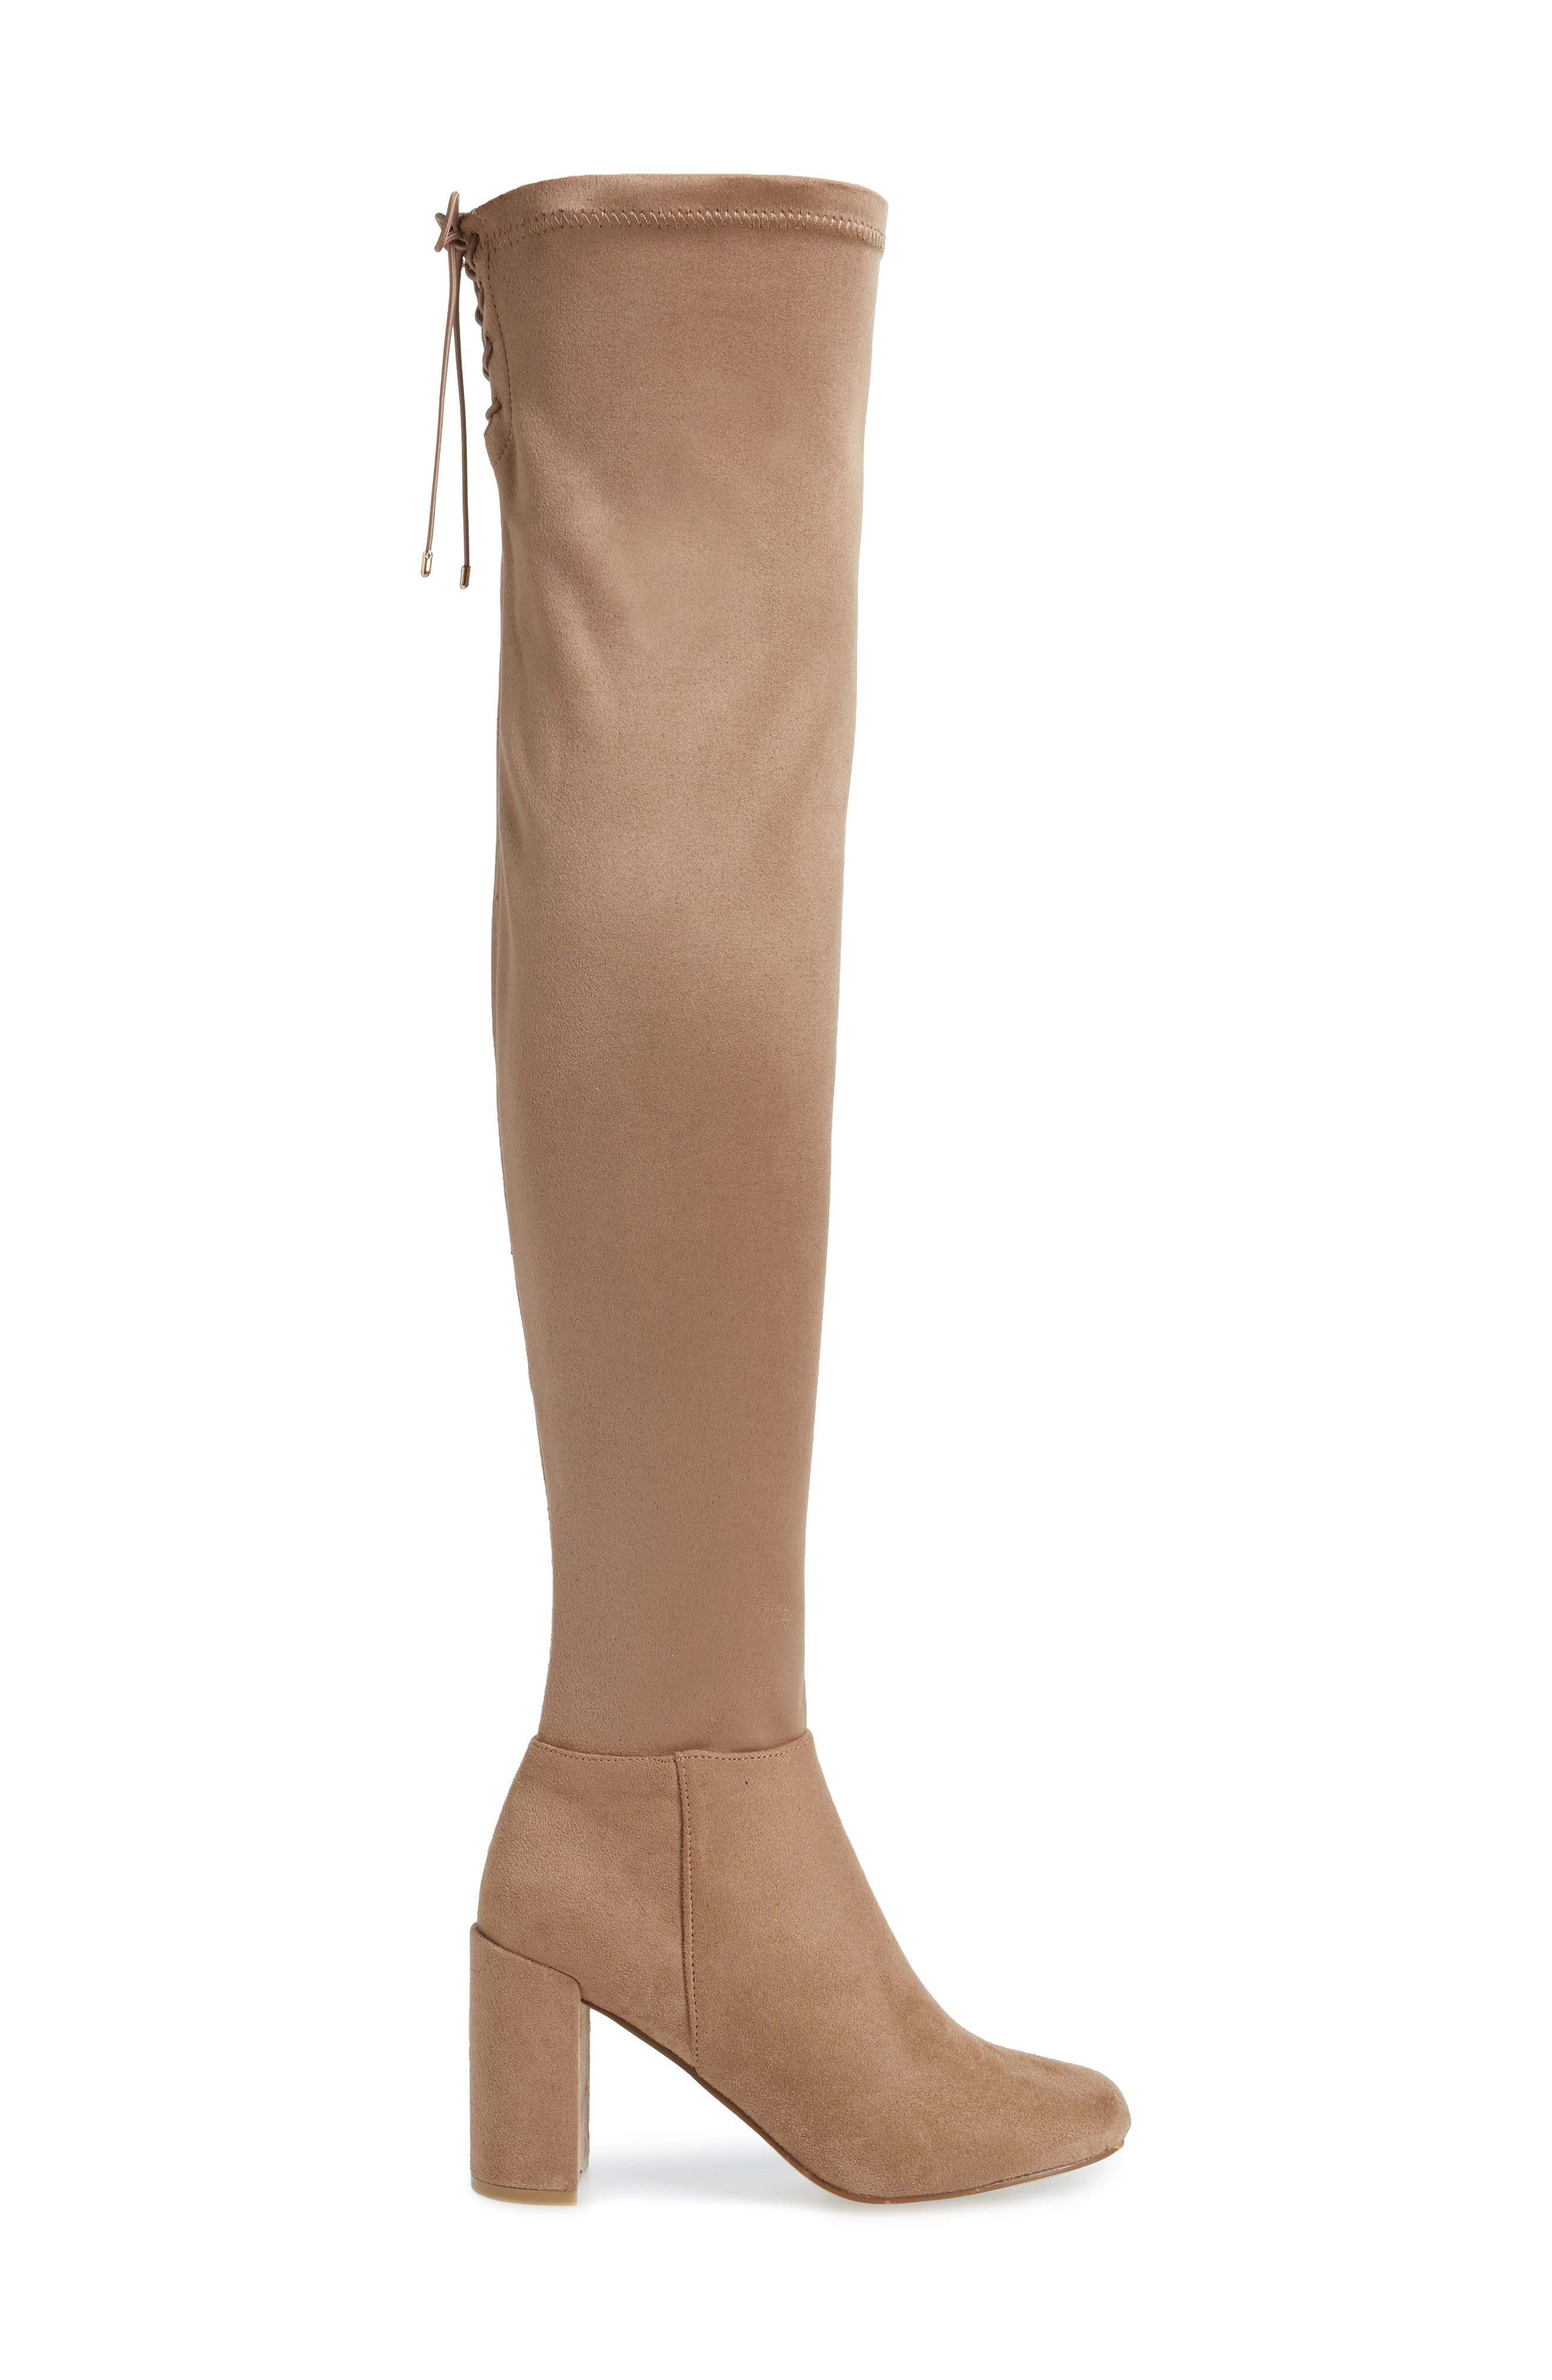 King Over the Knee Boot,                             Alternate thumbnail 3, color,                             MINK